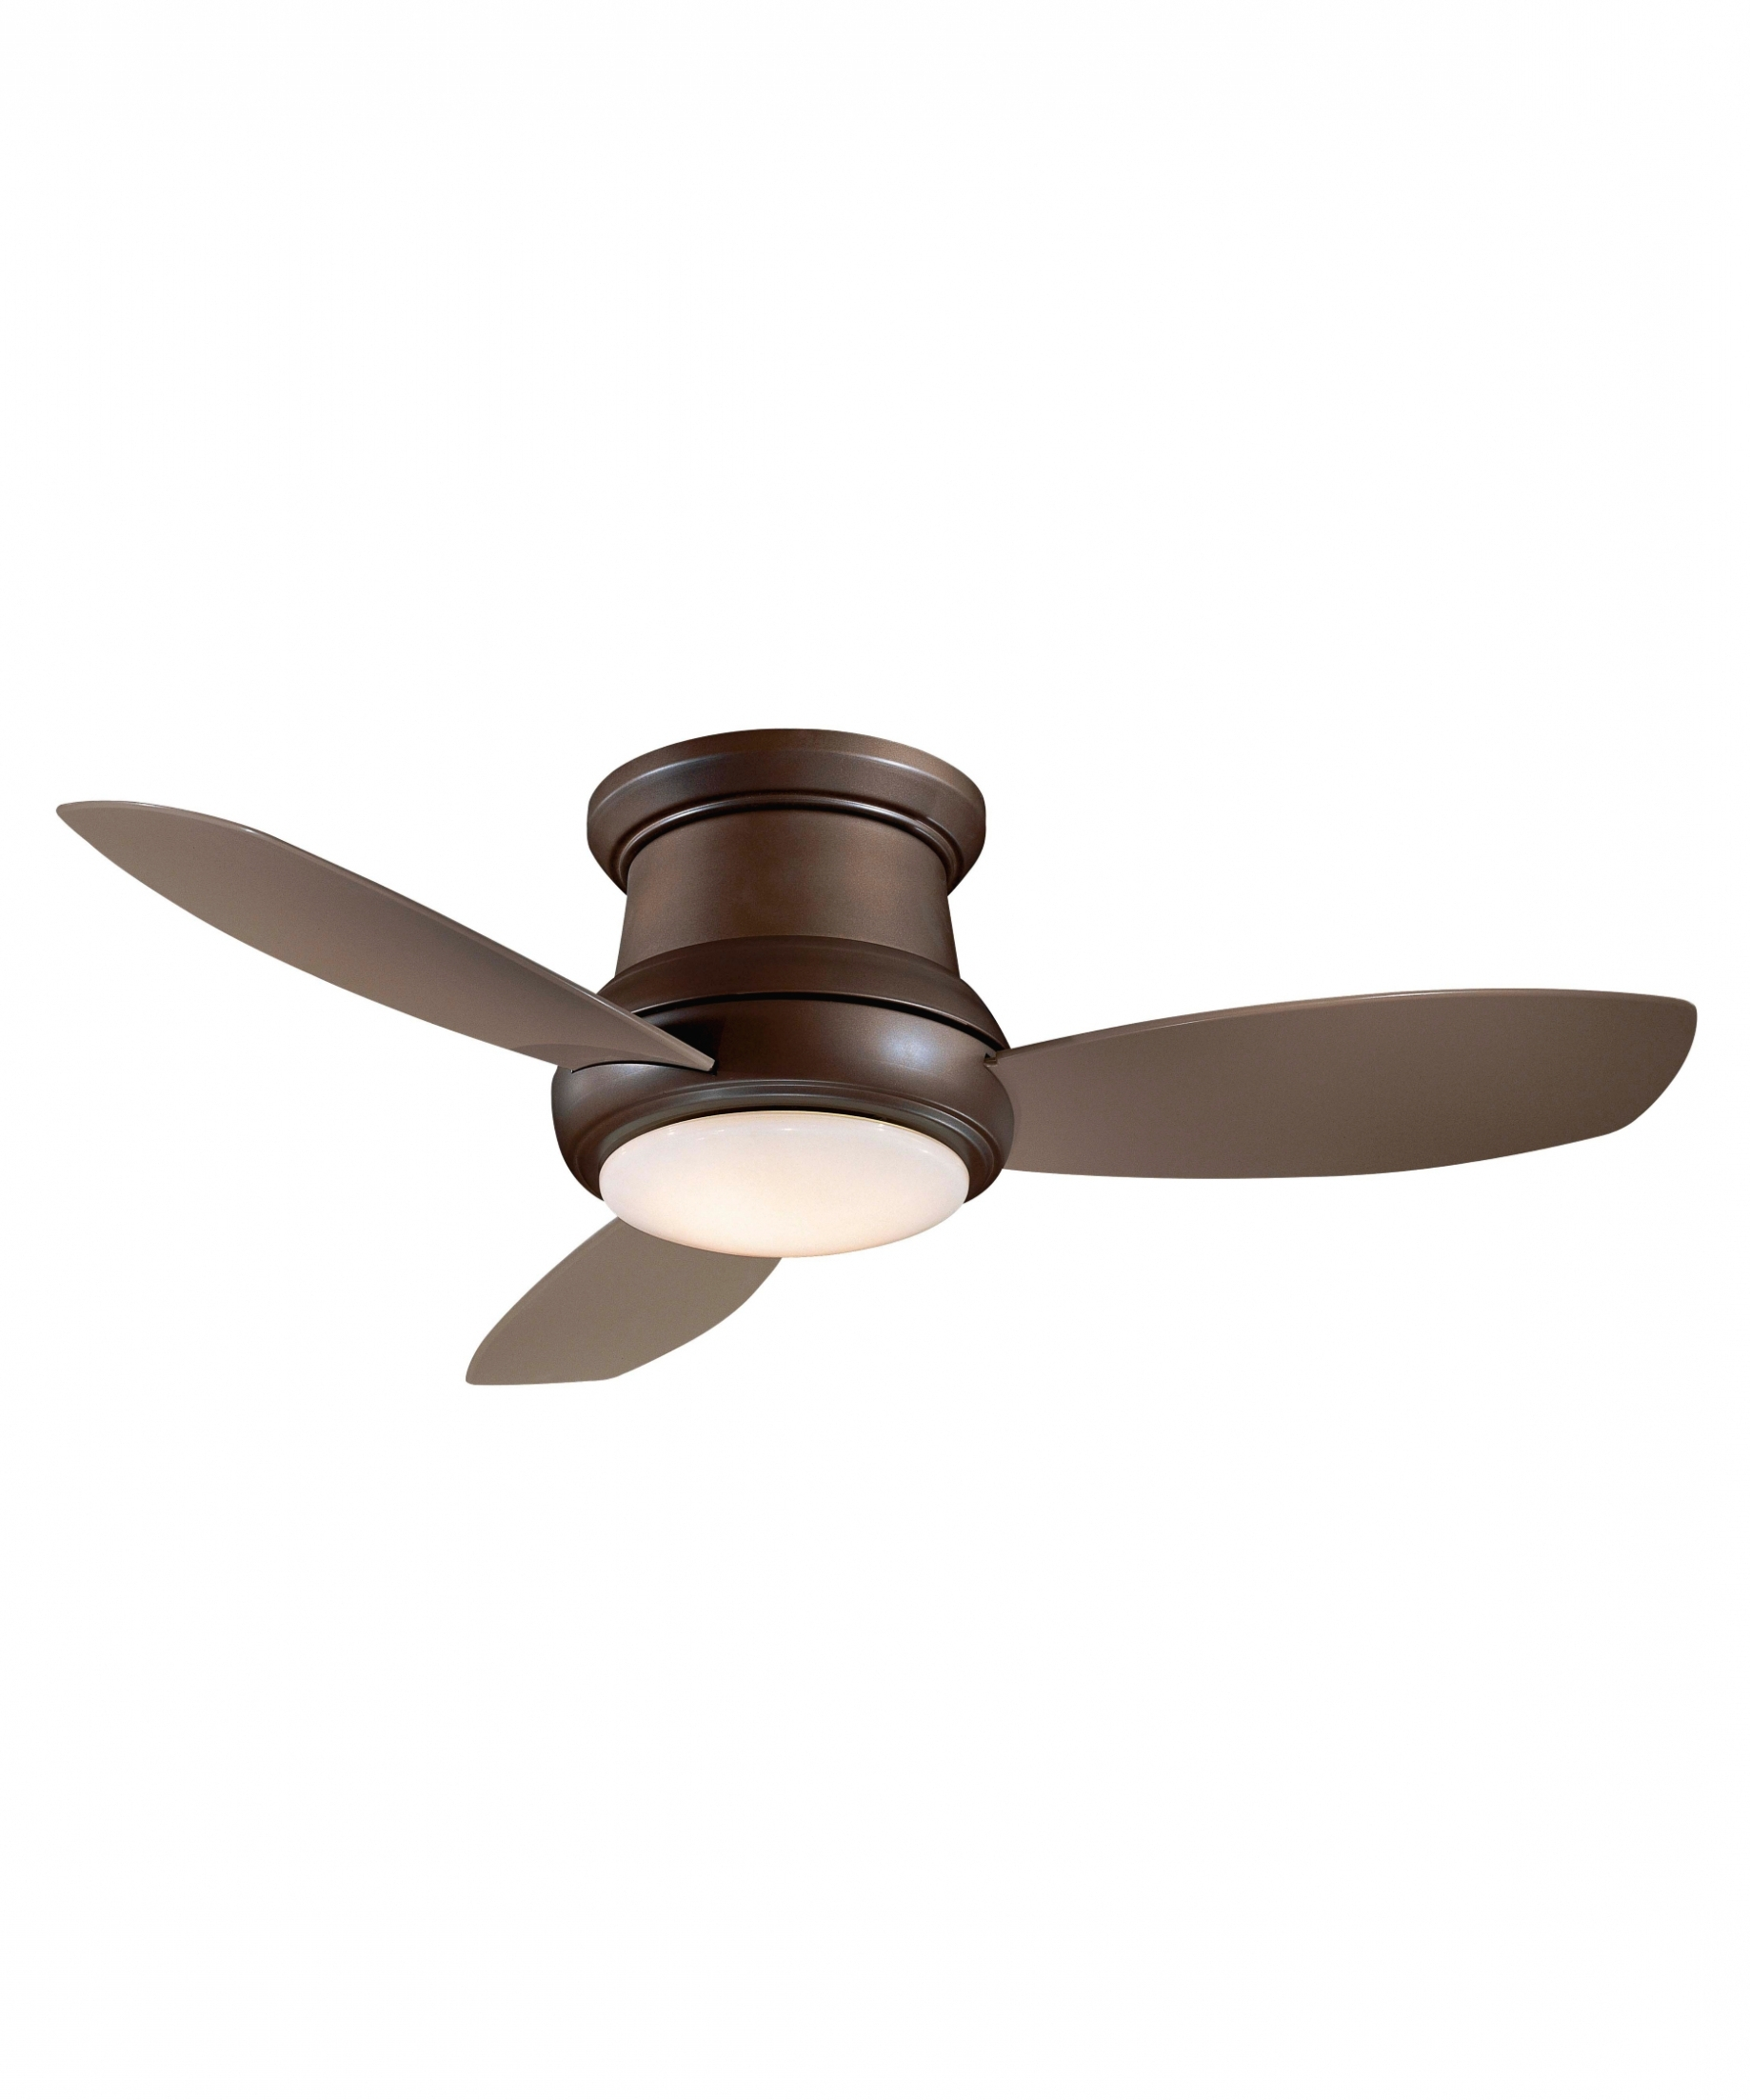 Preferred Home Decor: Growth Flush Mount Outdoor Ceiling Fan With Light Fans Within Flush Mount Outdoor Ceiling Fans (View 16 of 20)